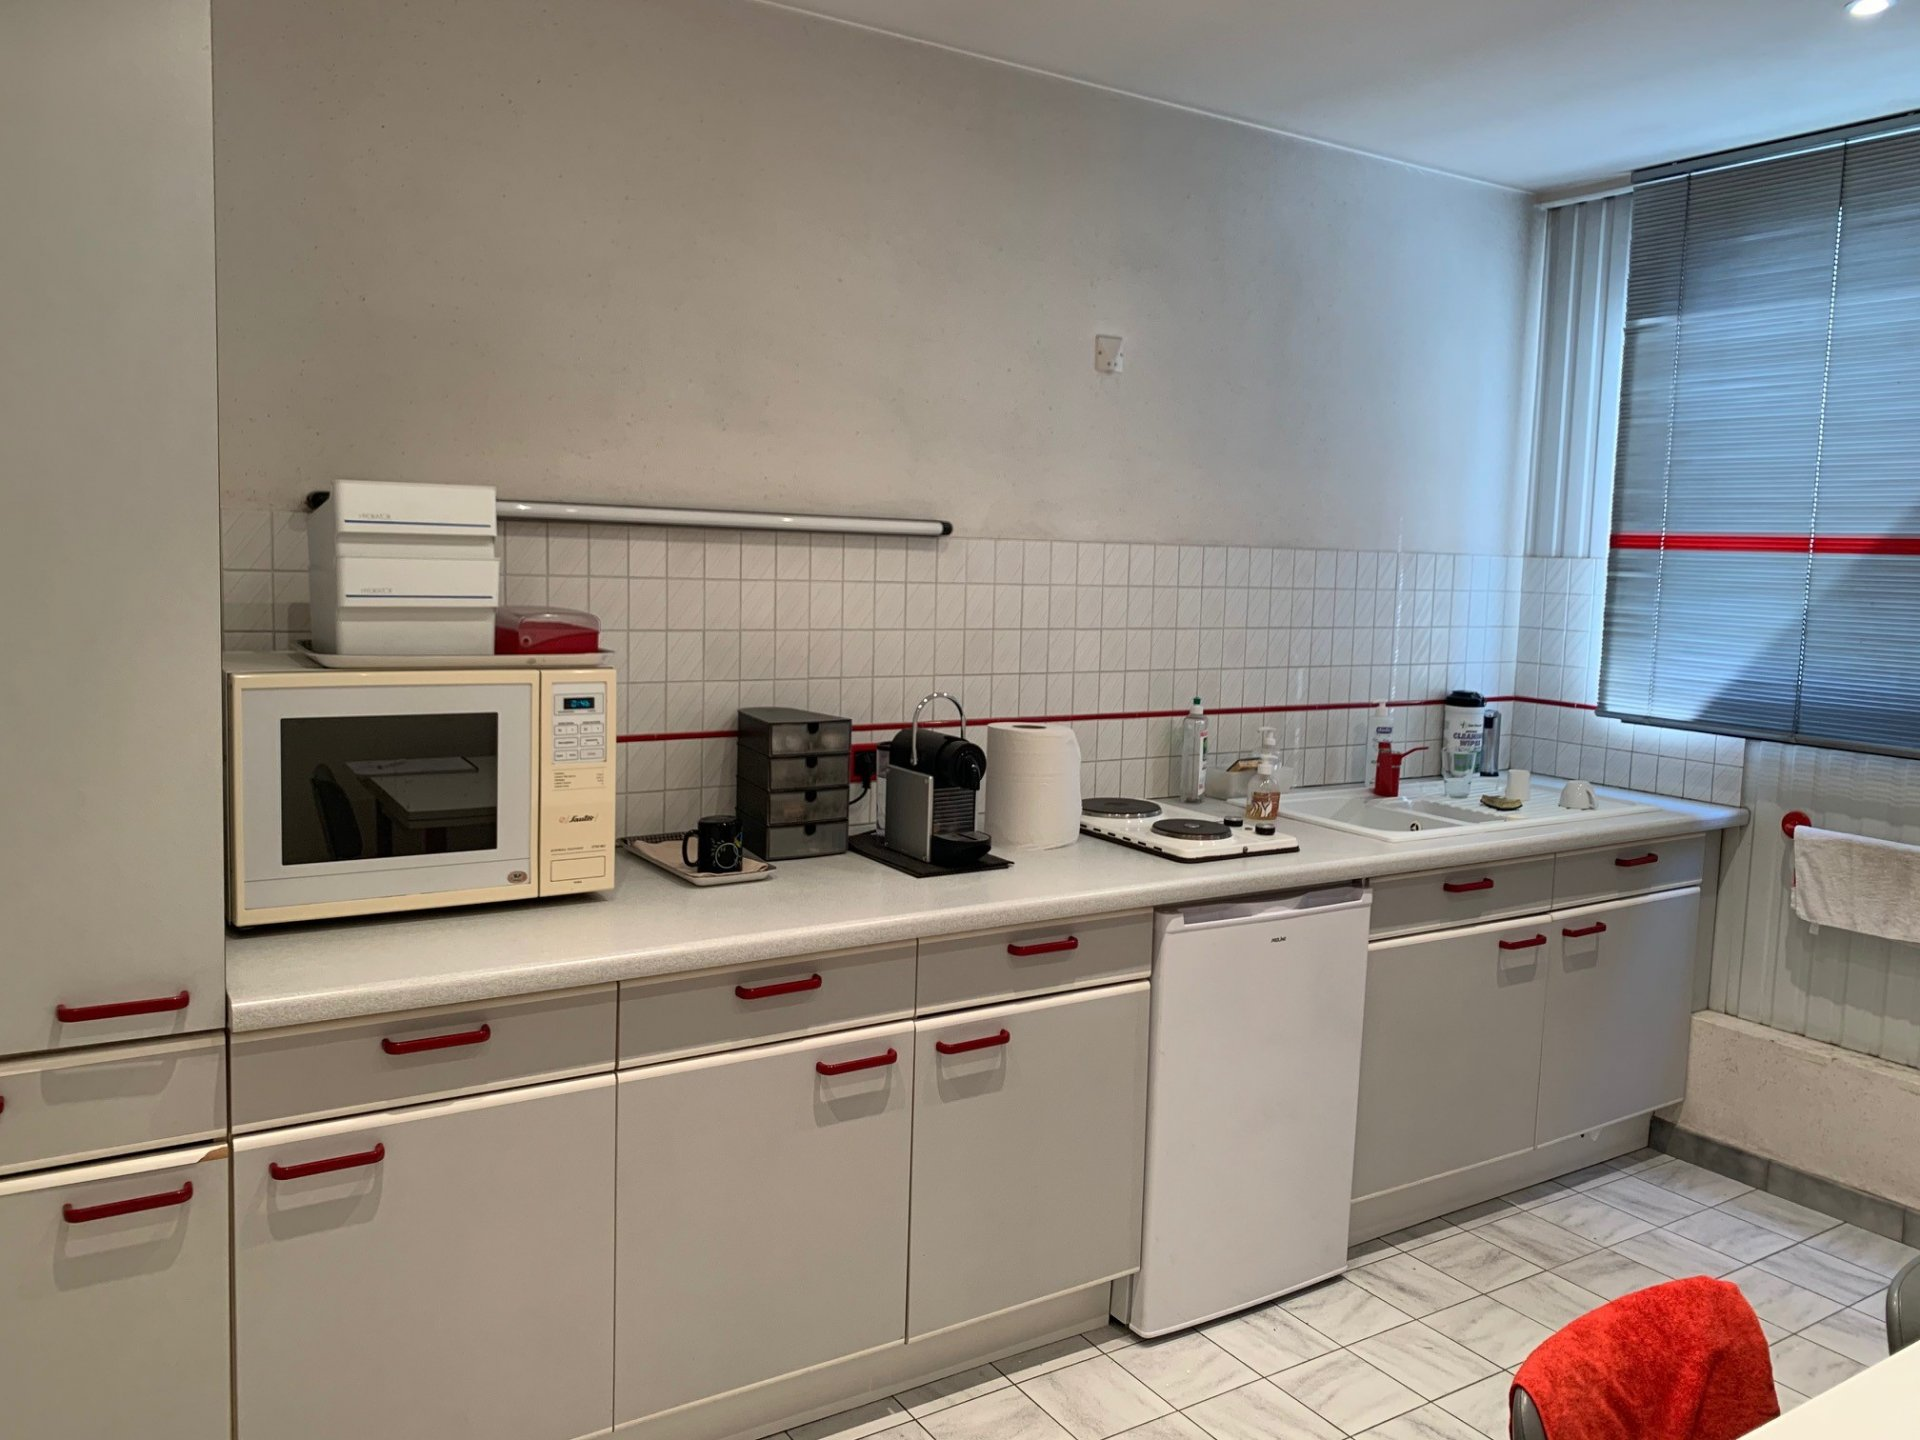 SALLANCHES - A LOUER LOCAL - ENTREPOT 450m²